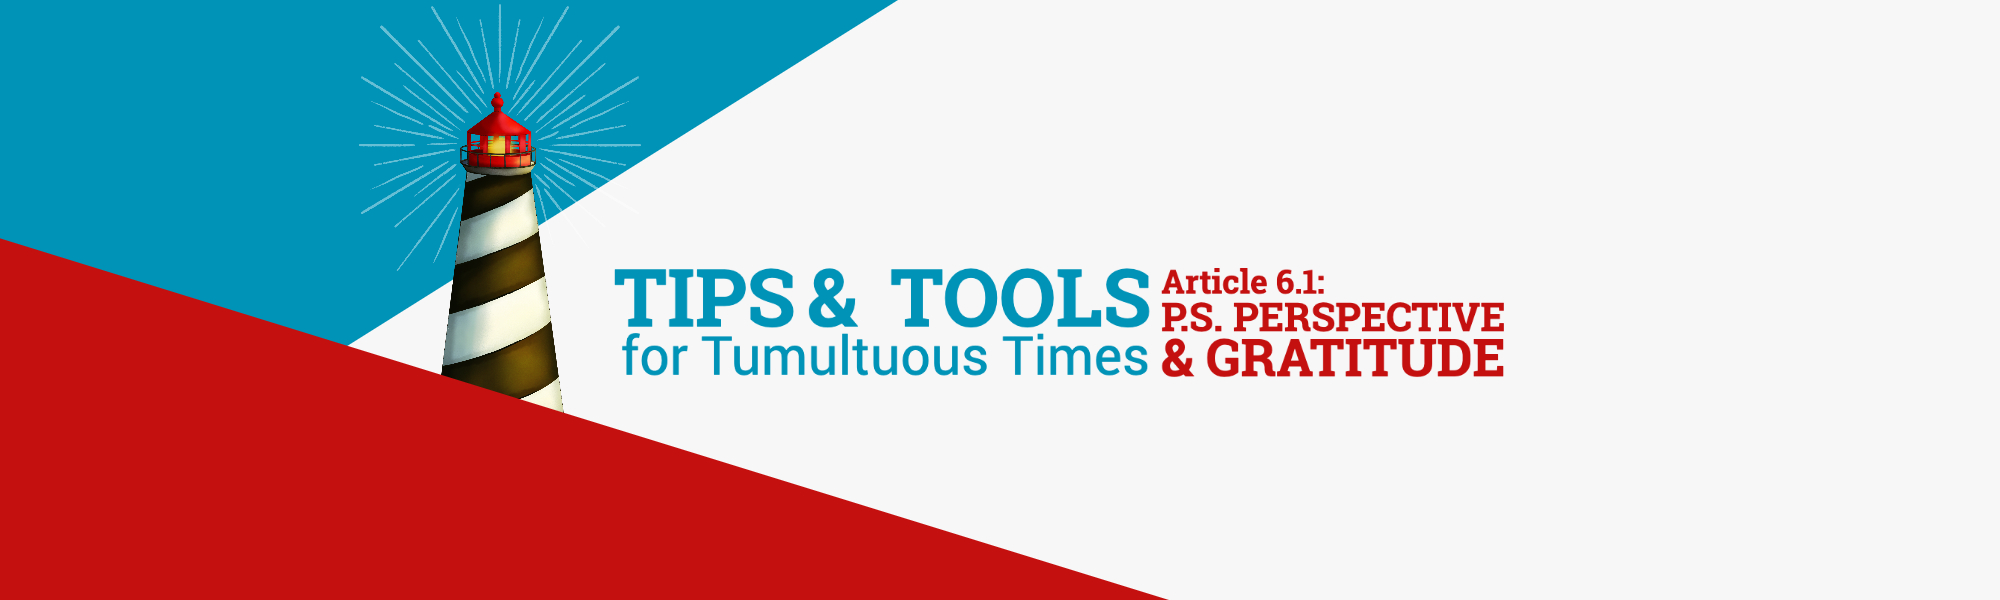 """TIPS & TOOLS, Article 6.1: """"P.S. Perspective & Gratitude"""""""